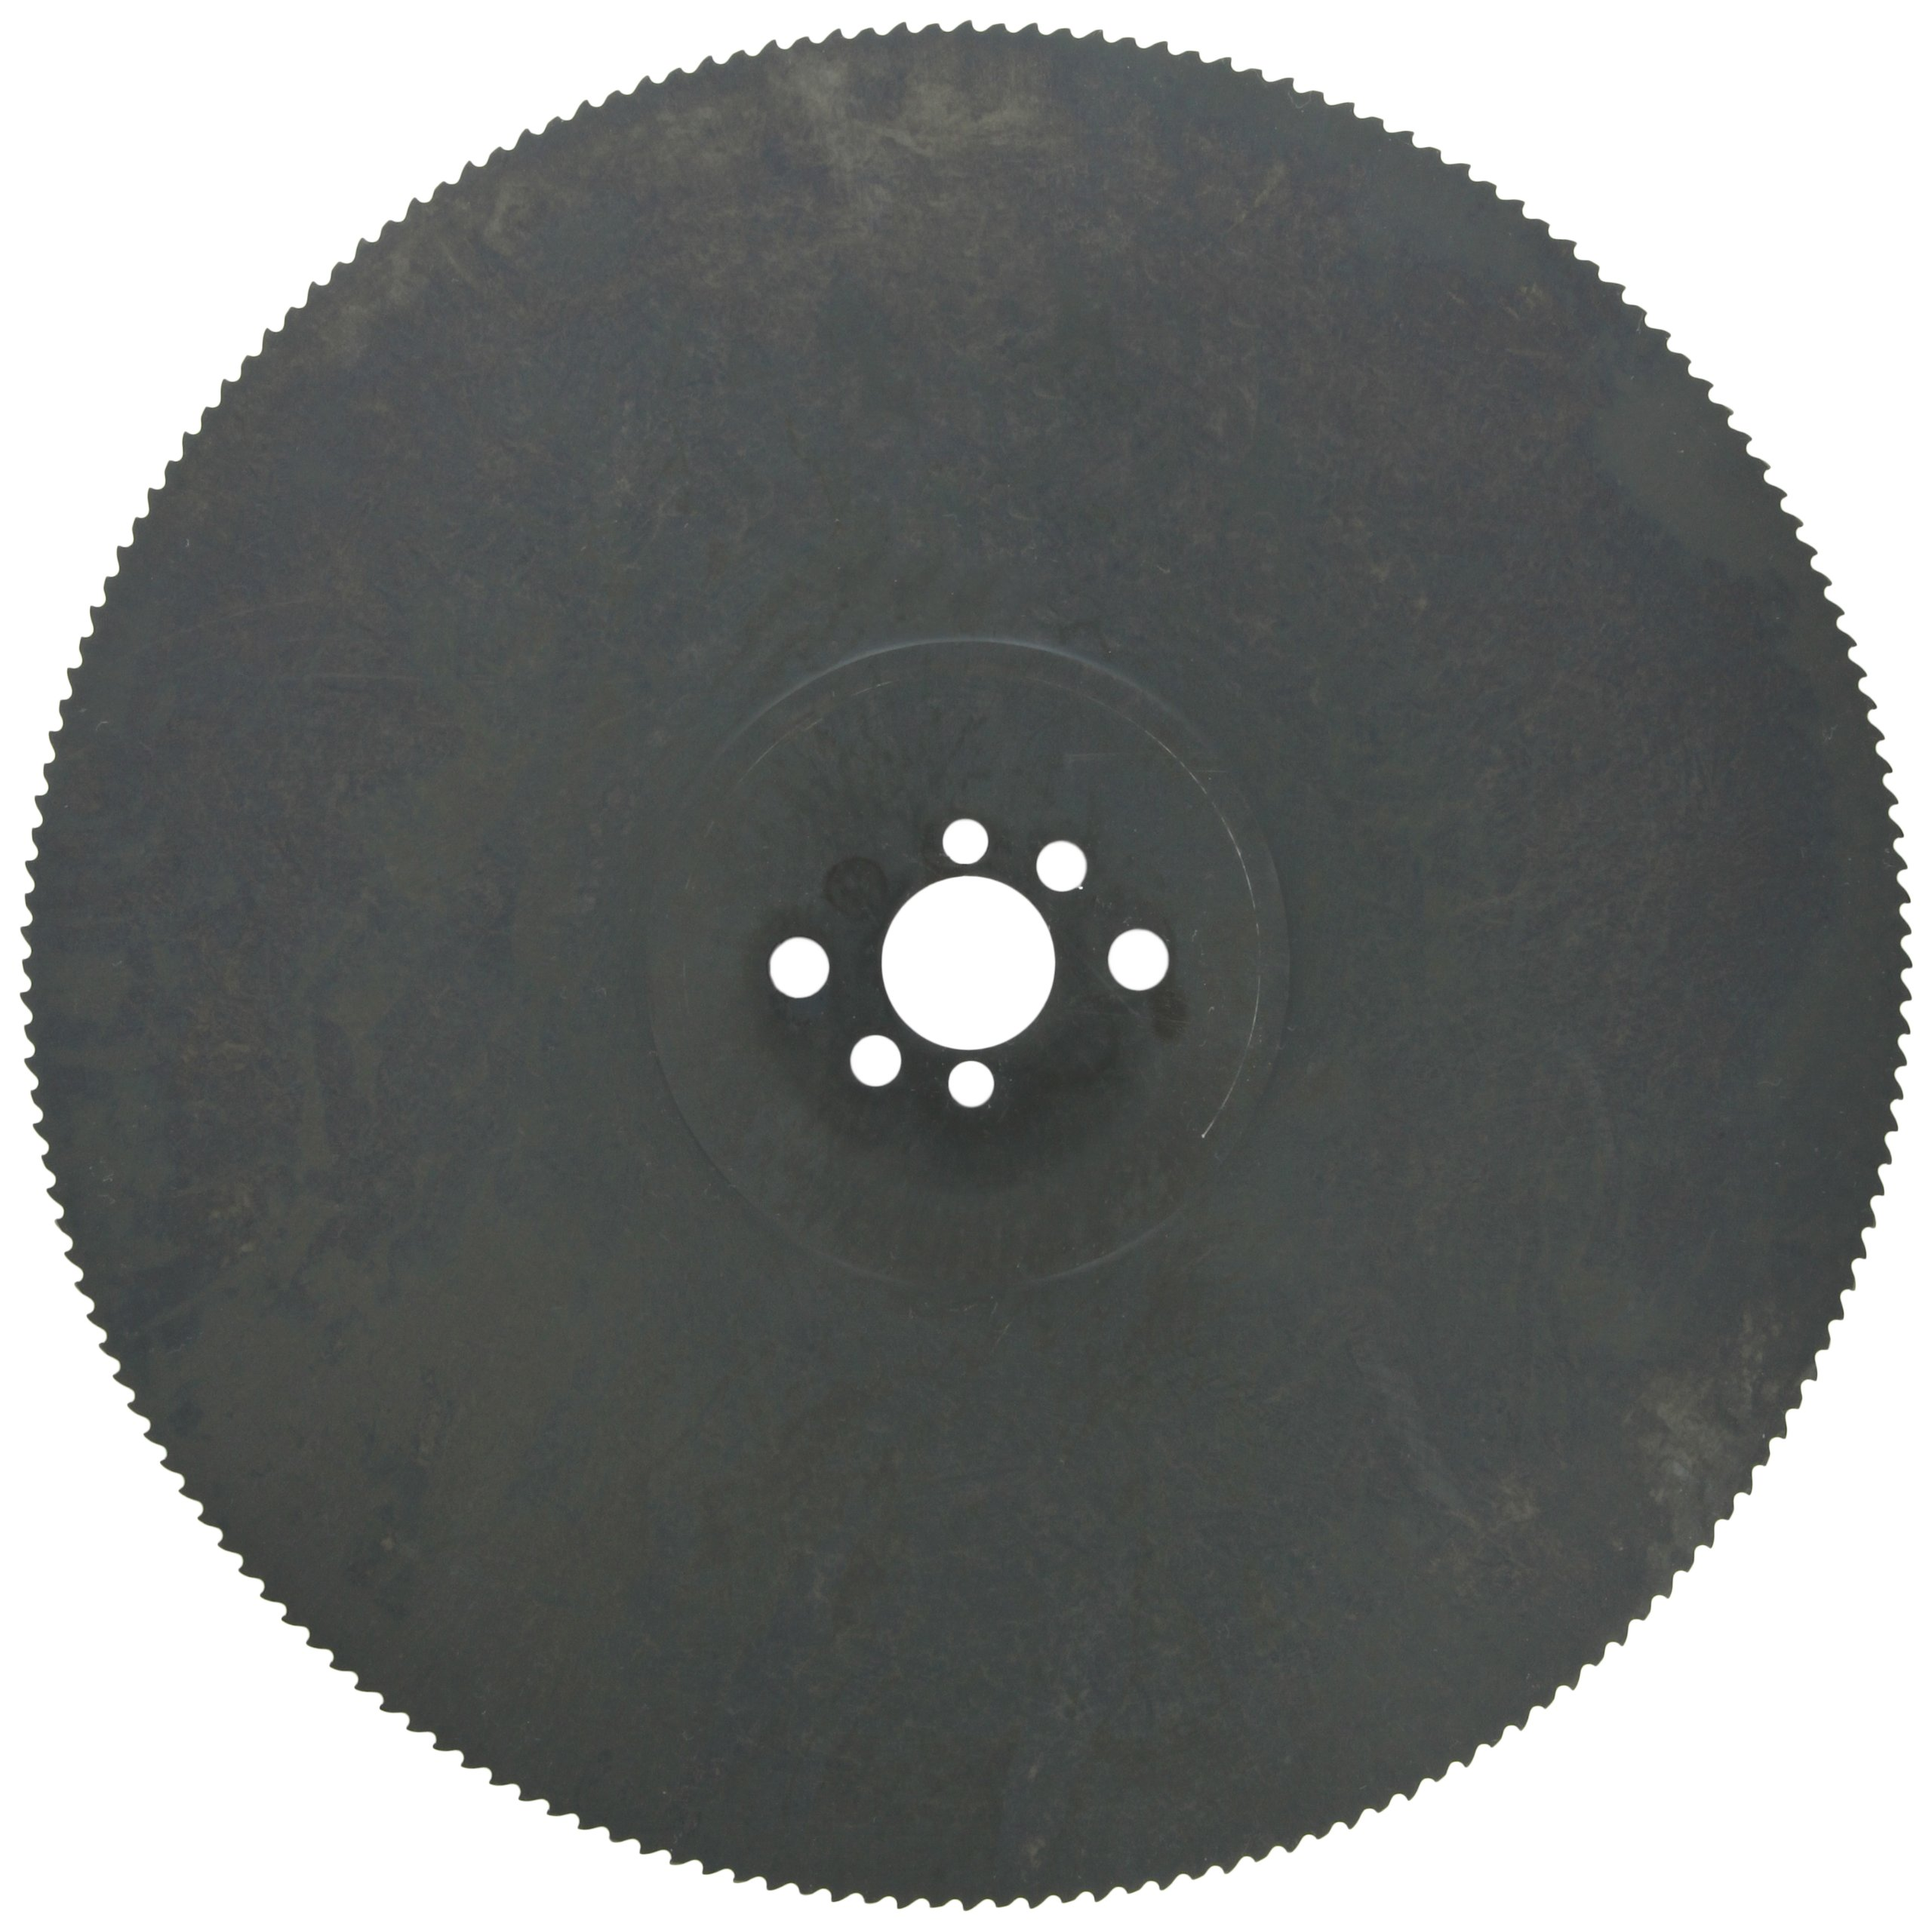 Kalamazoo 1406-32 Oxide Coated M2 High Speed Steel Circular Saw Blade, 2.5mm Thick, 6mm Tooth Pitch, 180 Teeth, 350mm Diameter, 32mm Arbor